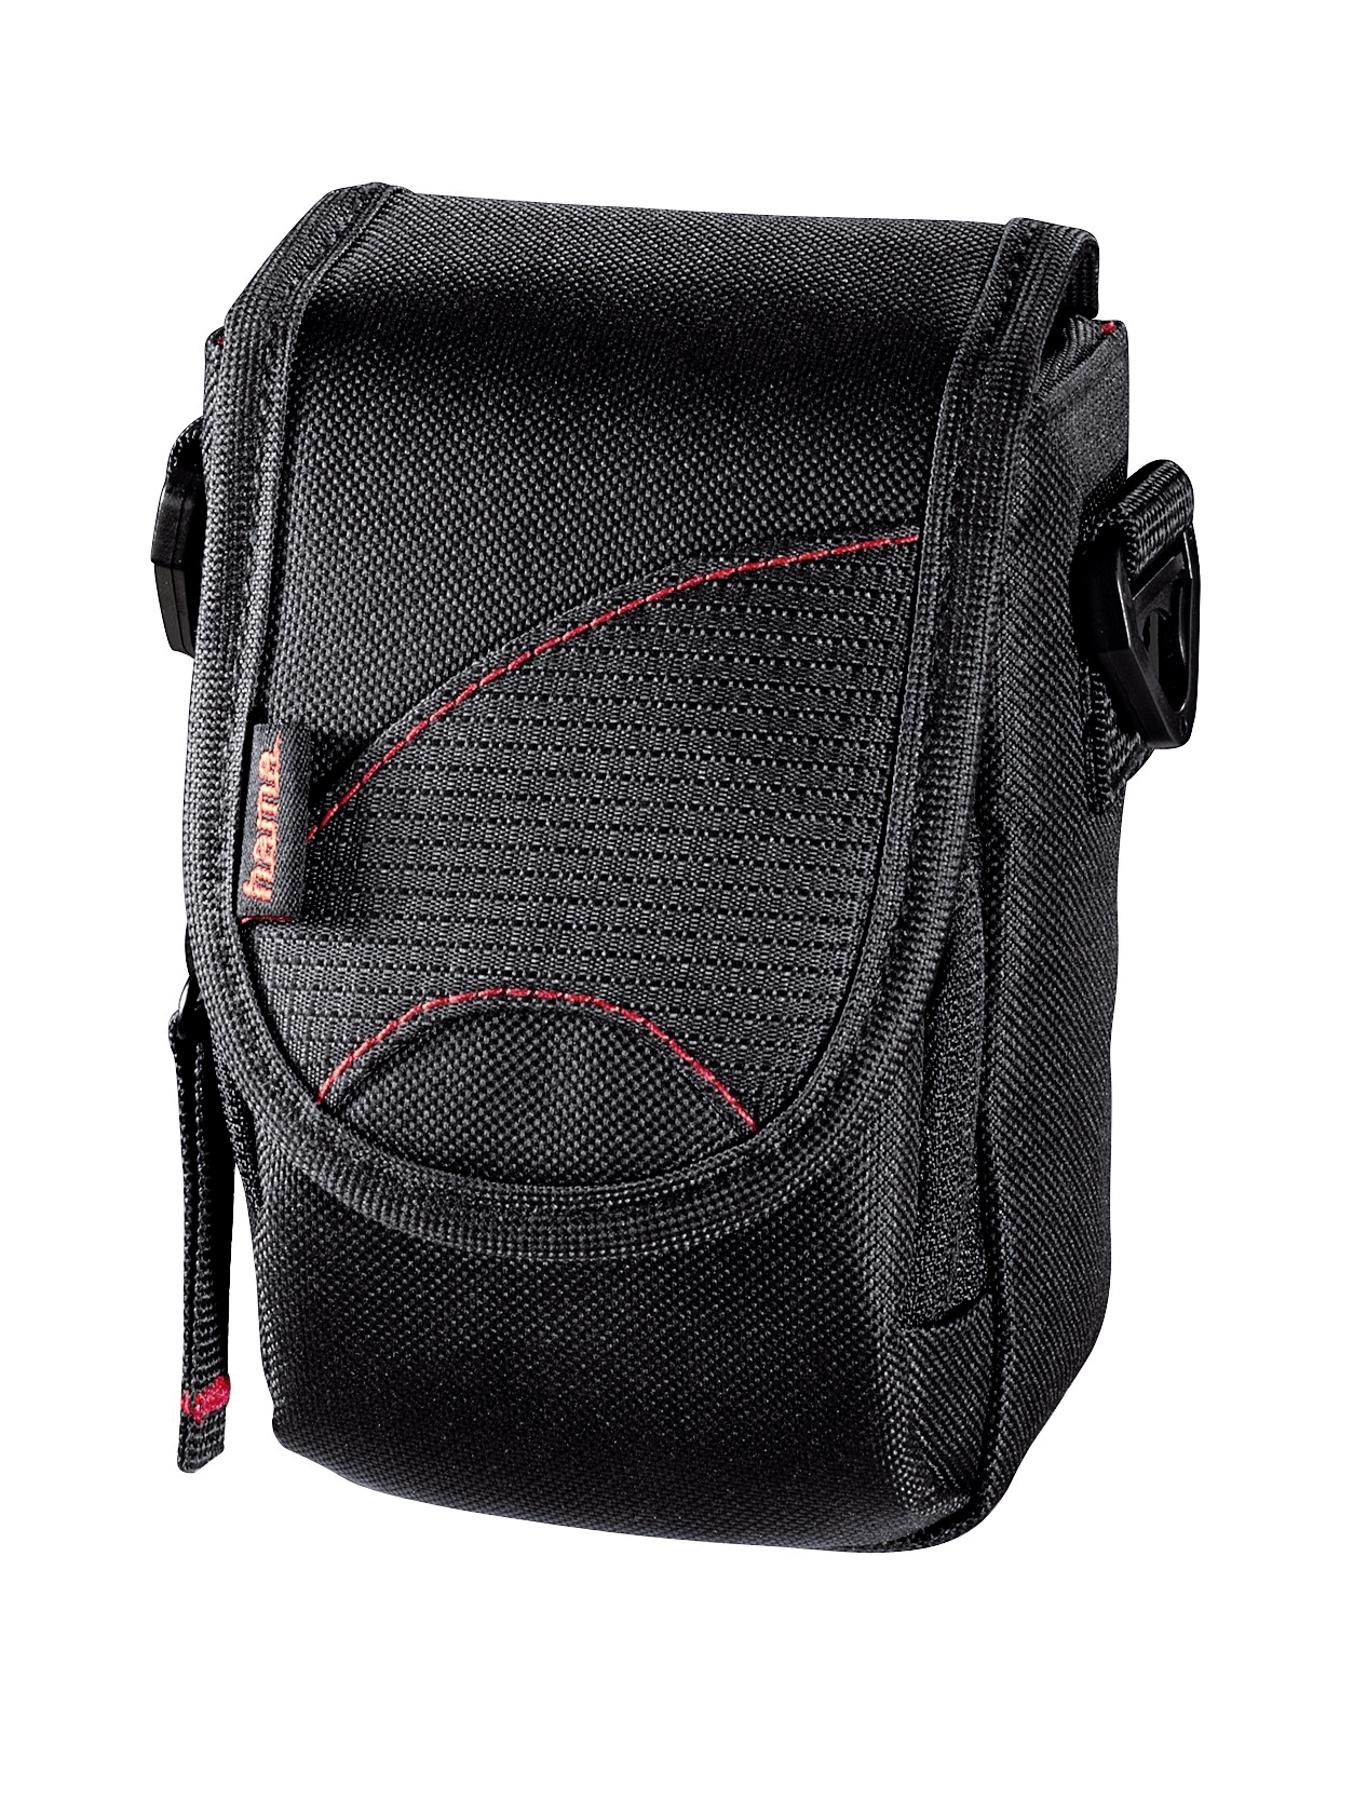 HAMA Astana 90P Camera Bag - Black at Very, from Littlewoods